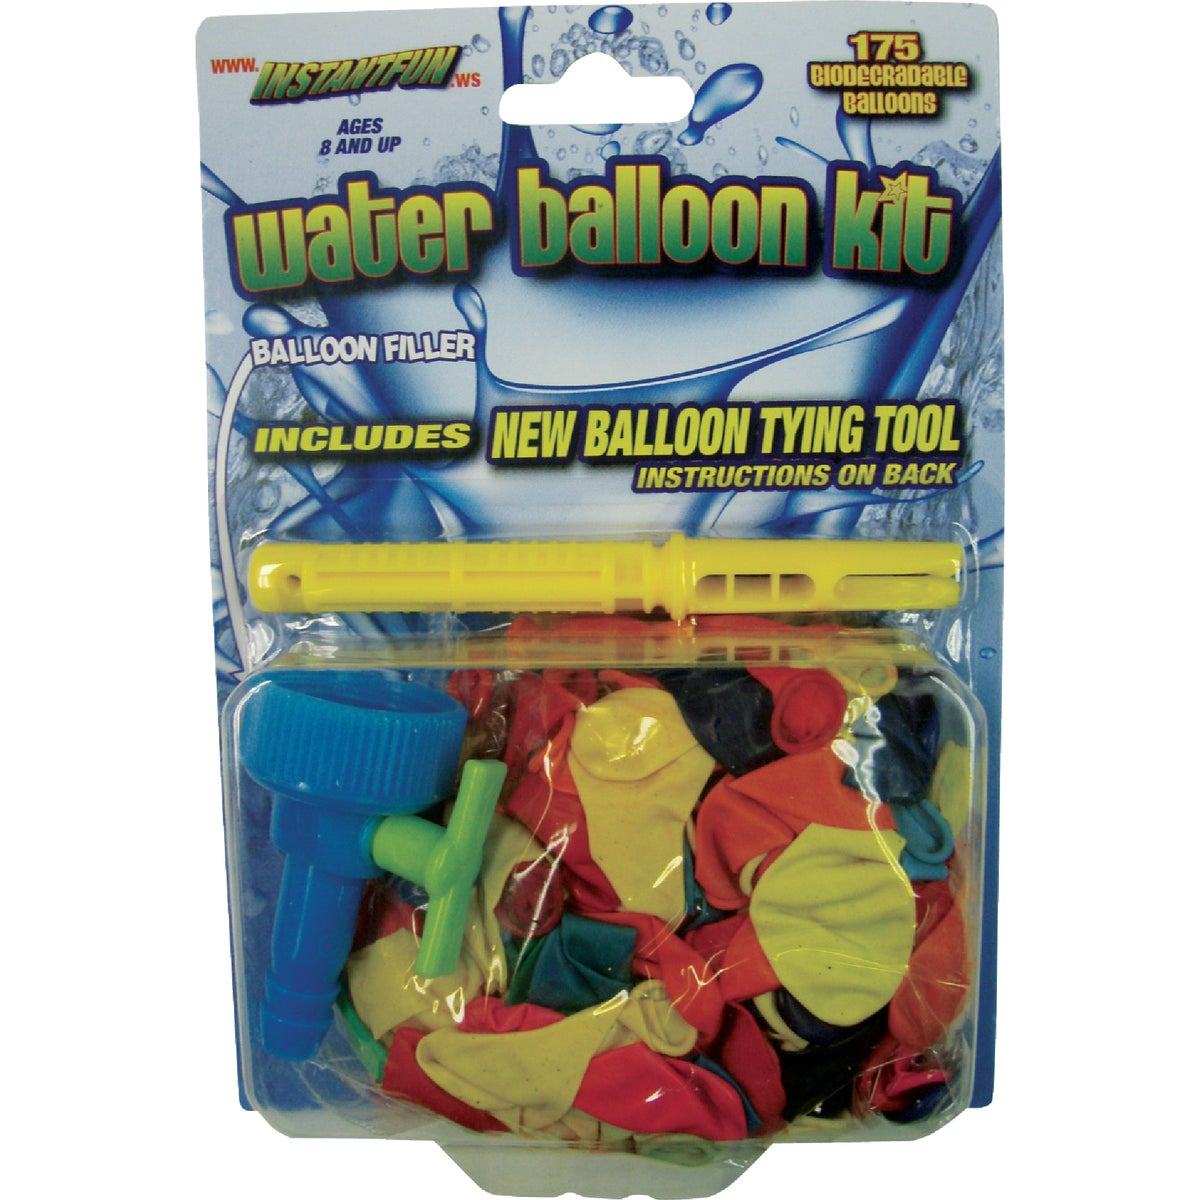 WATER BALLOON REFILL KIT - 80081 by Water Sports Llc